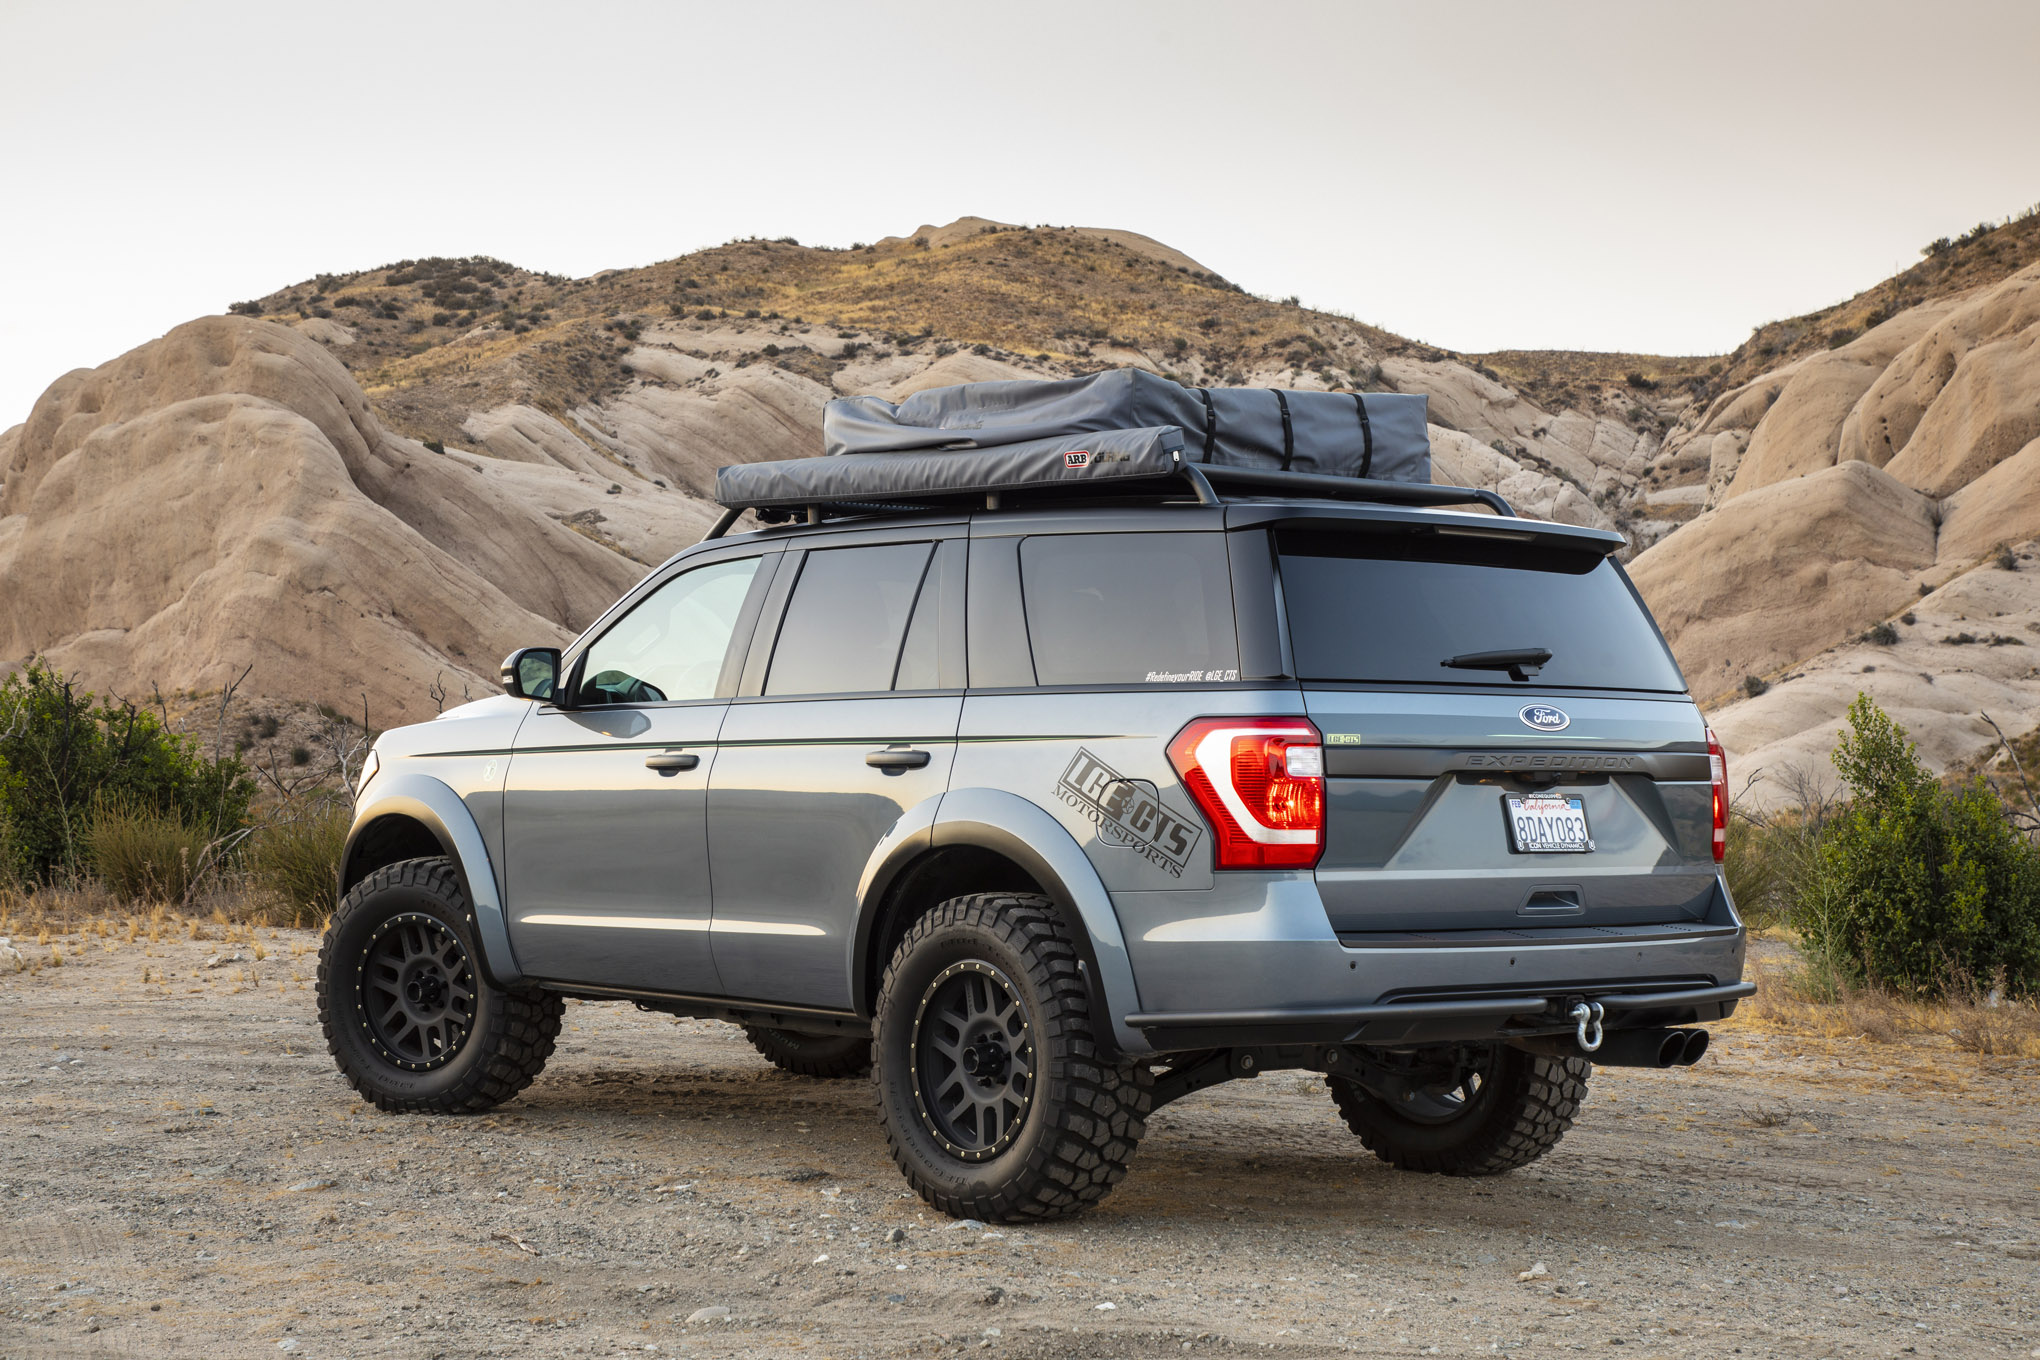 2018 ford expedition family adventure http www trucktrend com features 1809 2018 ford expedition family adventure